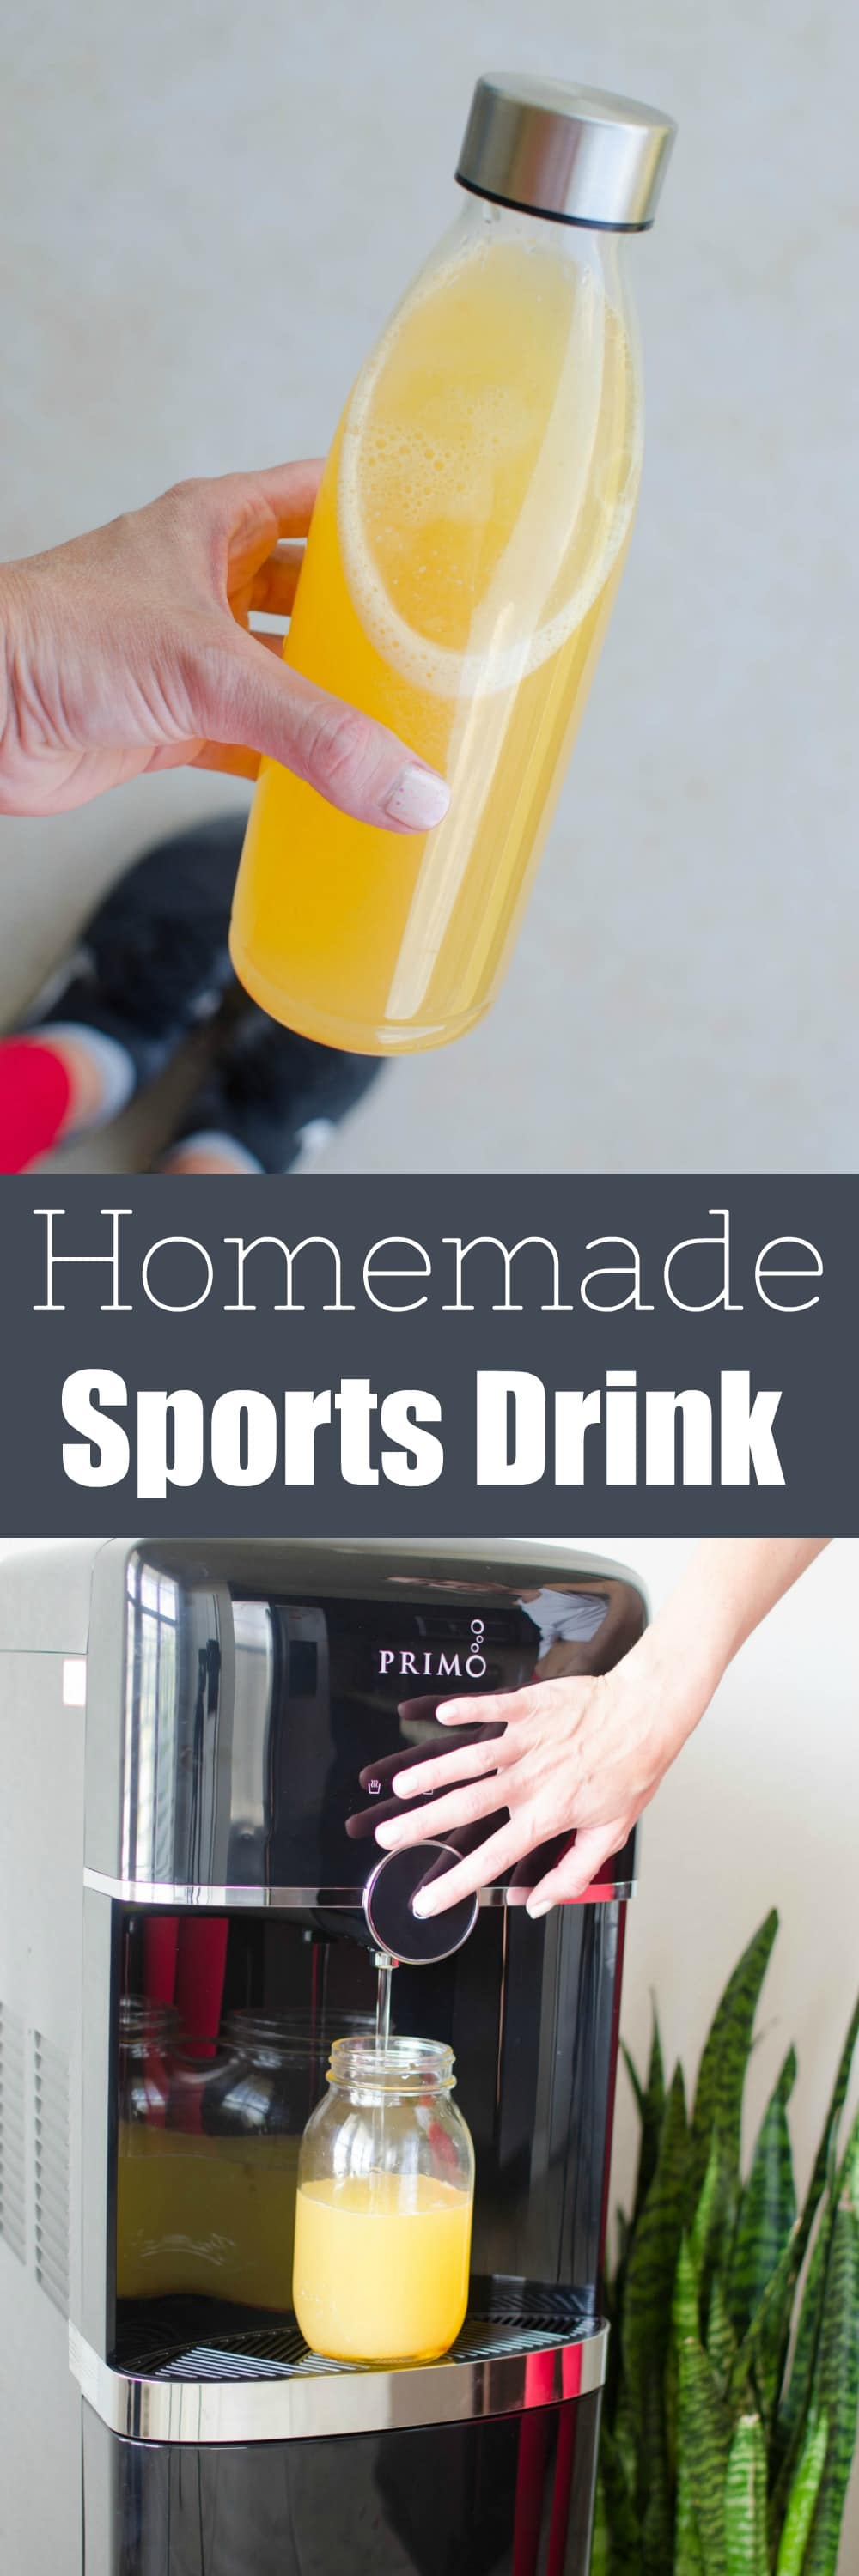 Homemade Sports Drink - skip the store-bought (and the single use plastic bottles!) and make your own sports drink with purified water, fresh orange juice, lemon juice, honey, and pink Himalayan salt.